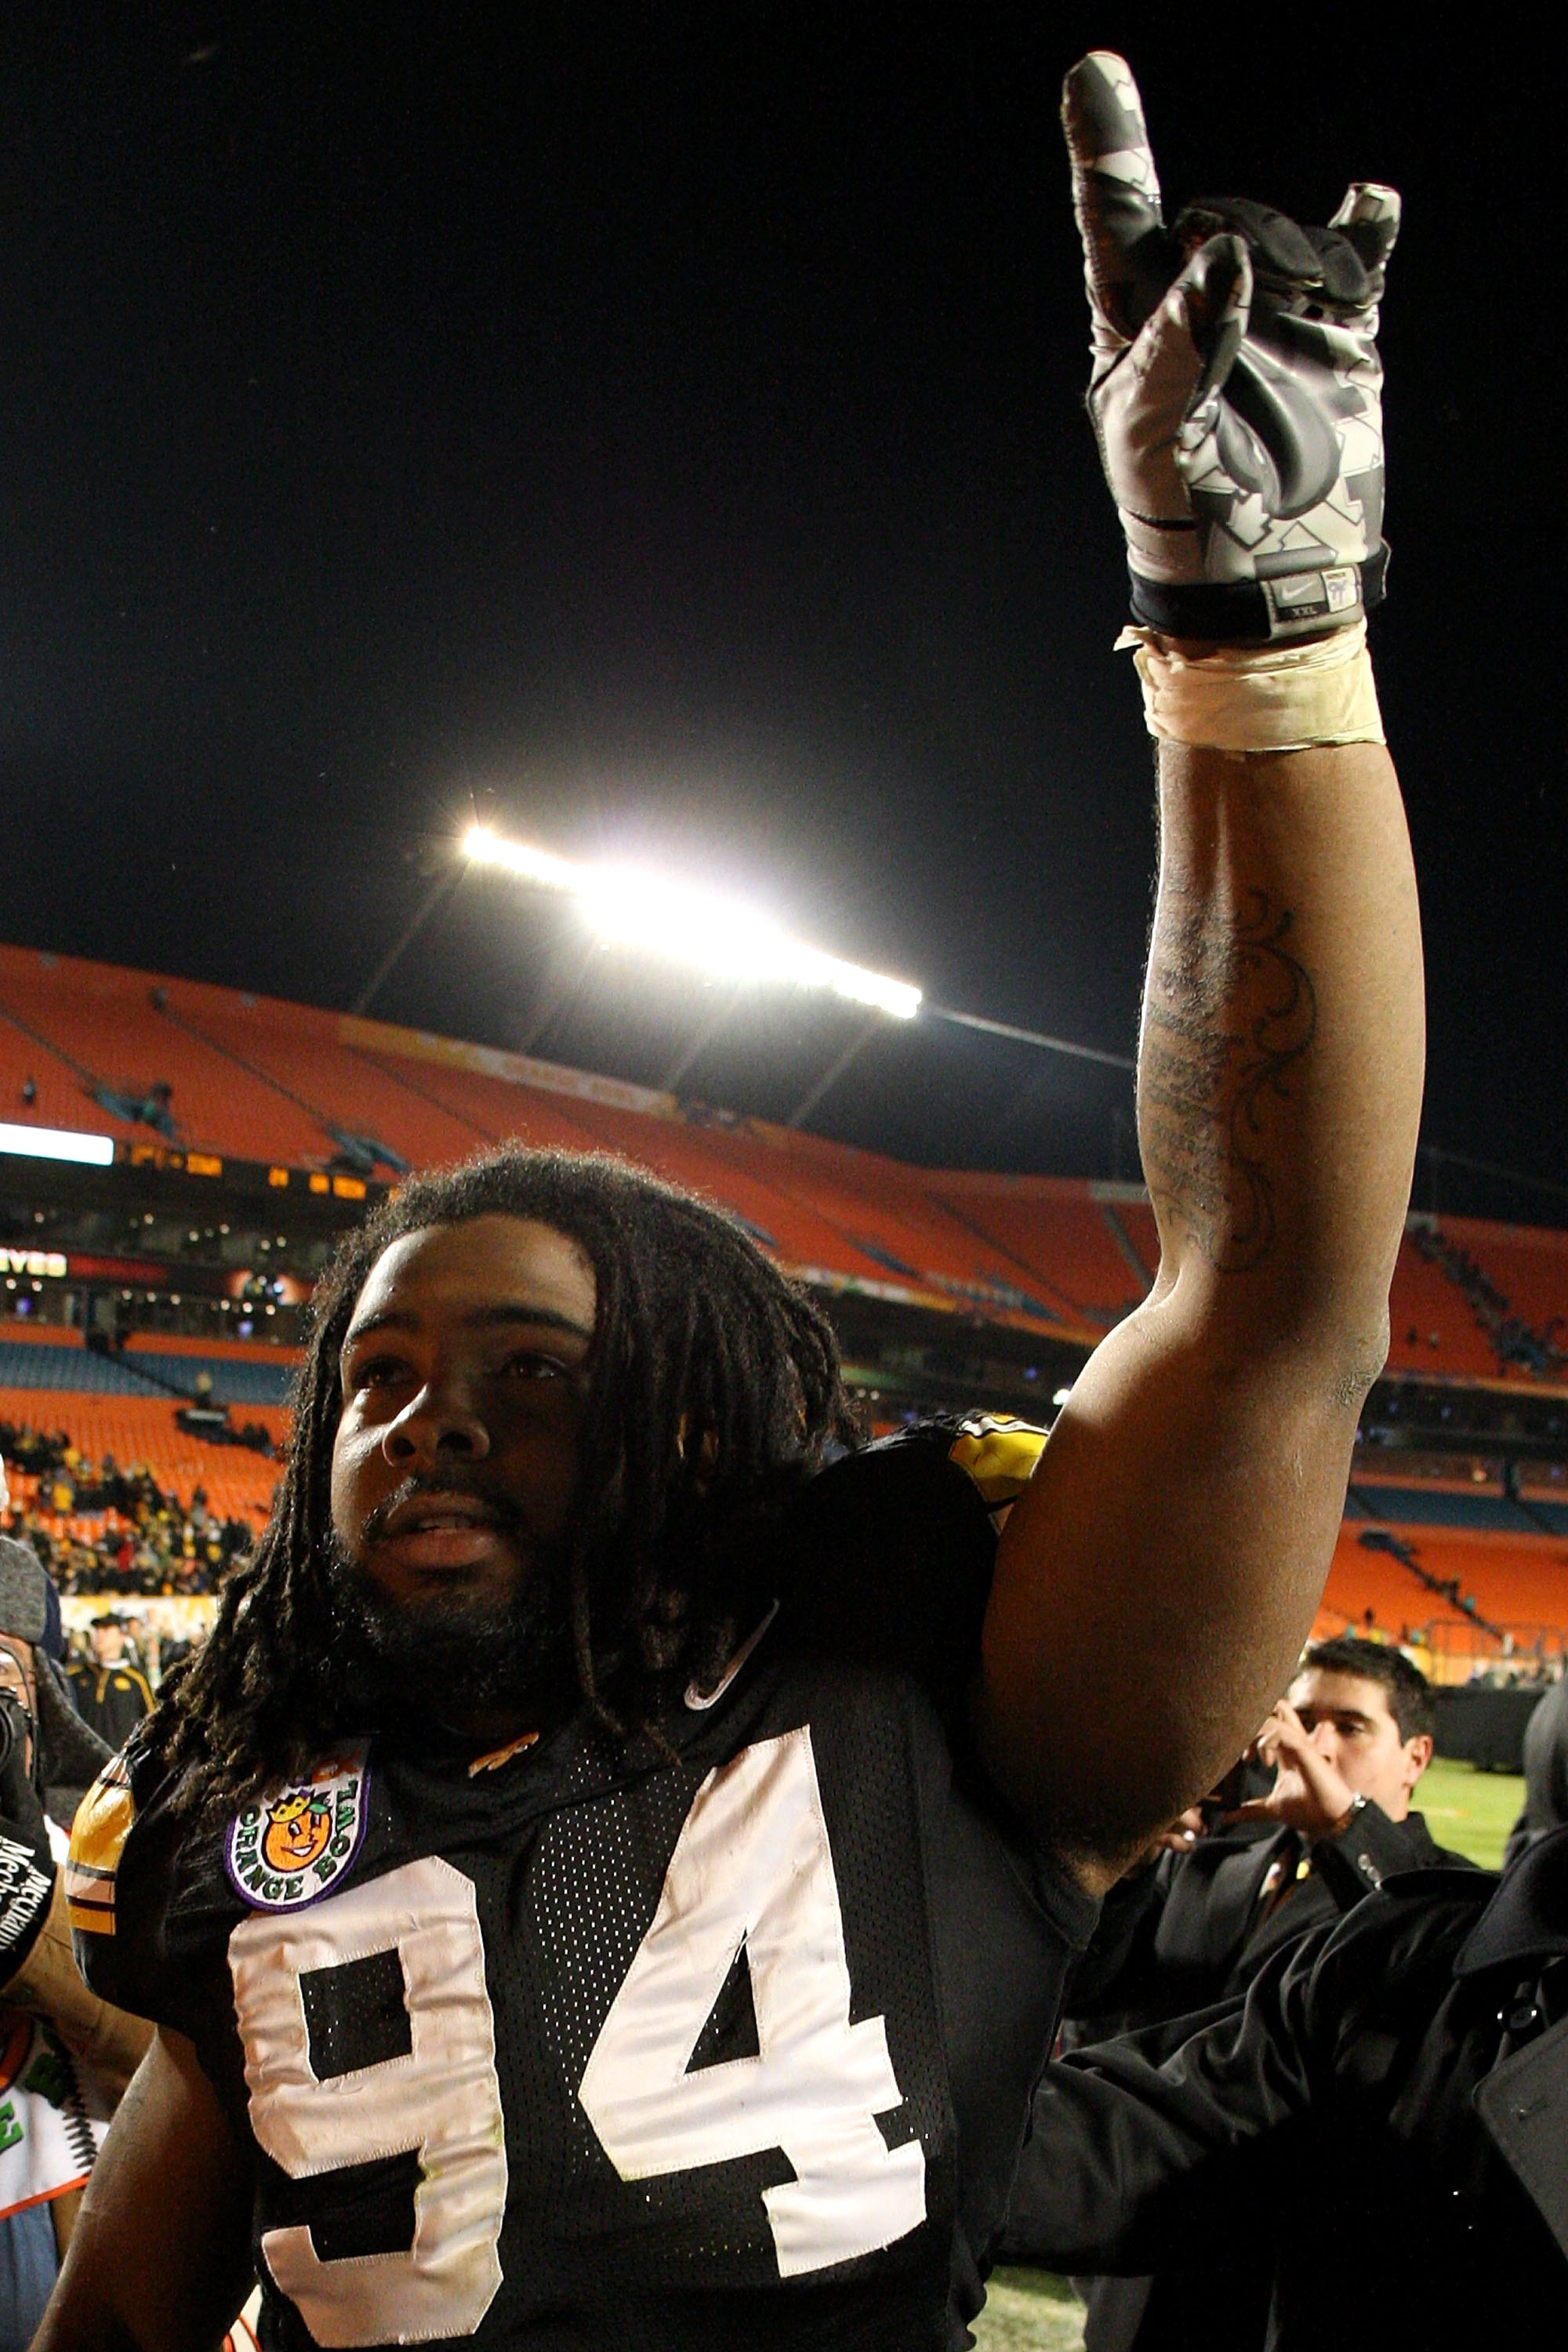 MIAMI GARDENS, FL - JANUARY 05:  Adrian Clayborn #94 of the Iowa Hawkeyes celebrates as he walks off the field after their 24-14 win against the Georgia Tech Yellow Jackets during the FedEx Orange Bowl at Land Shark Stadium on January 5, 2010 in Miami Gar